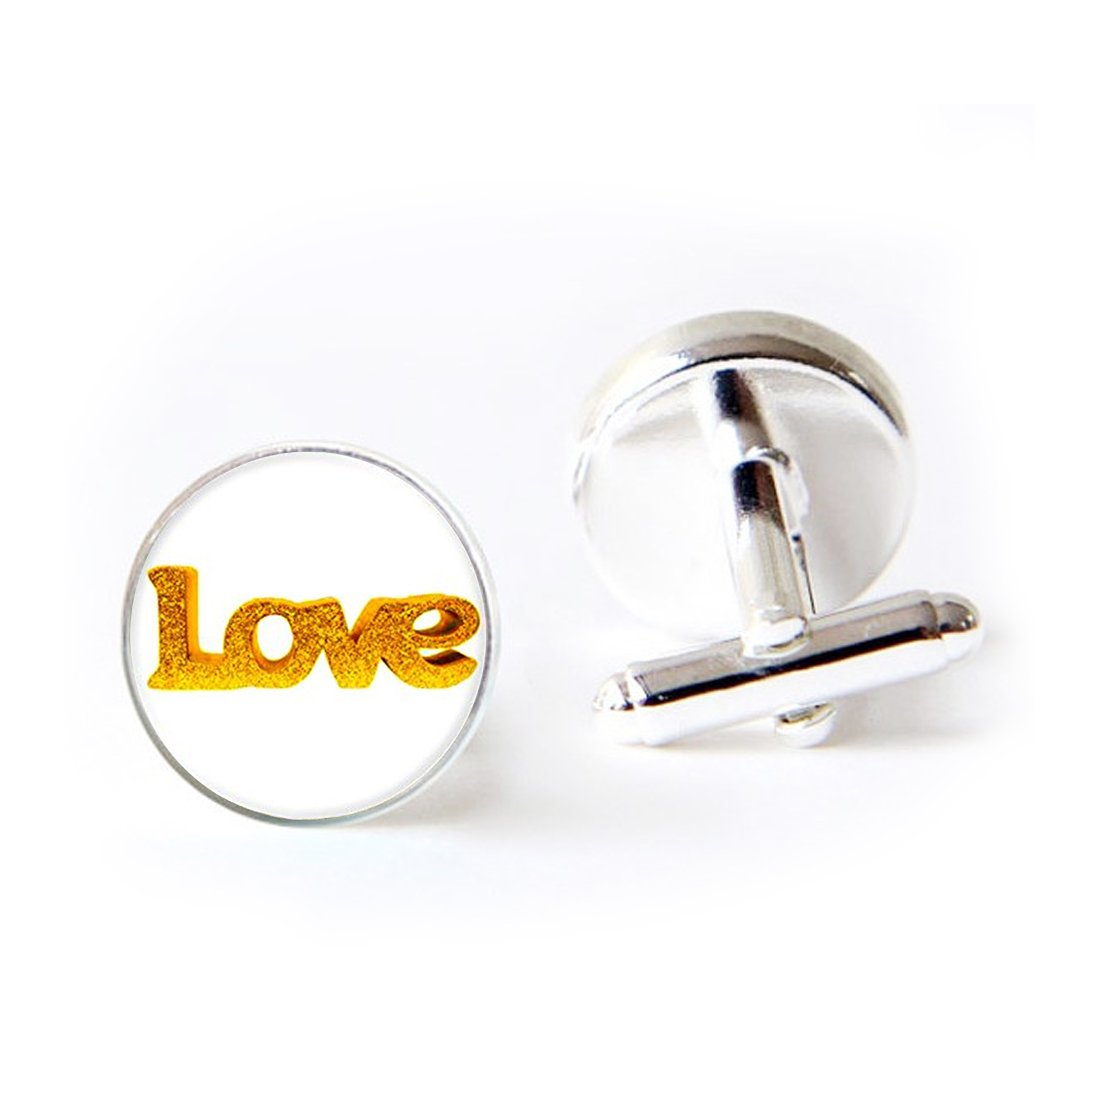 Unique Round Cufflinks Set English Word '' Love '' Bling Bling Glass Cuff Dress Shirt Links Wedding Business Anniversary Gift for Him